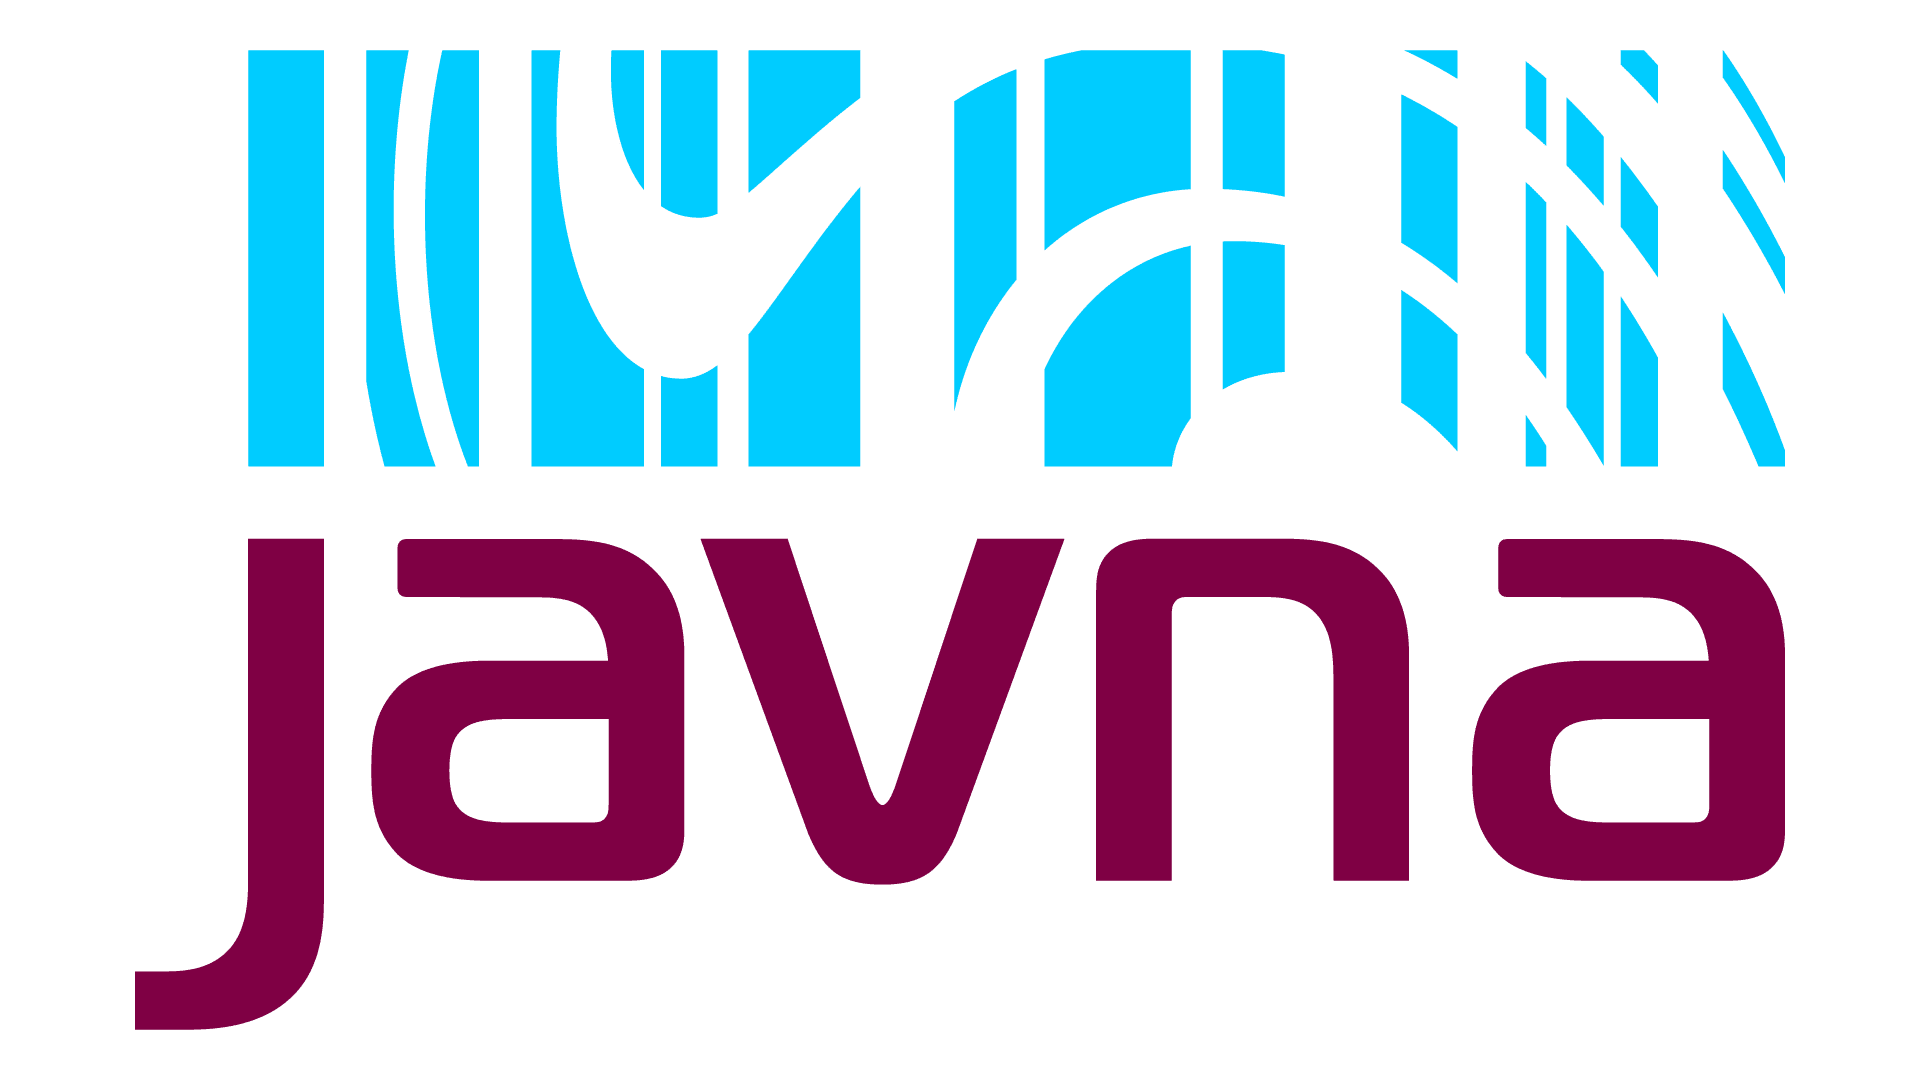 Javna logo colors